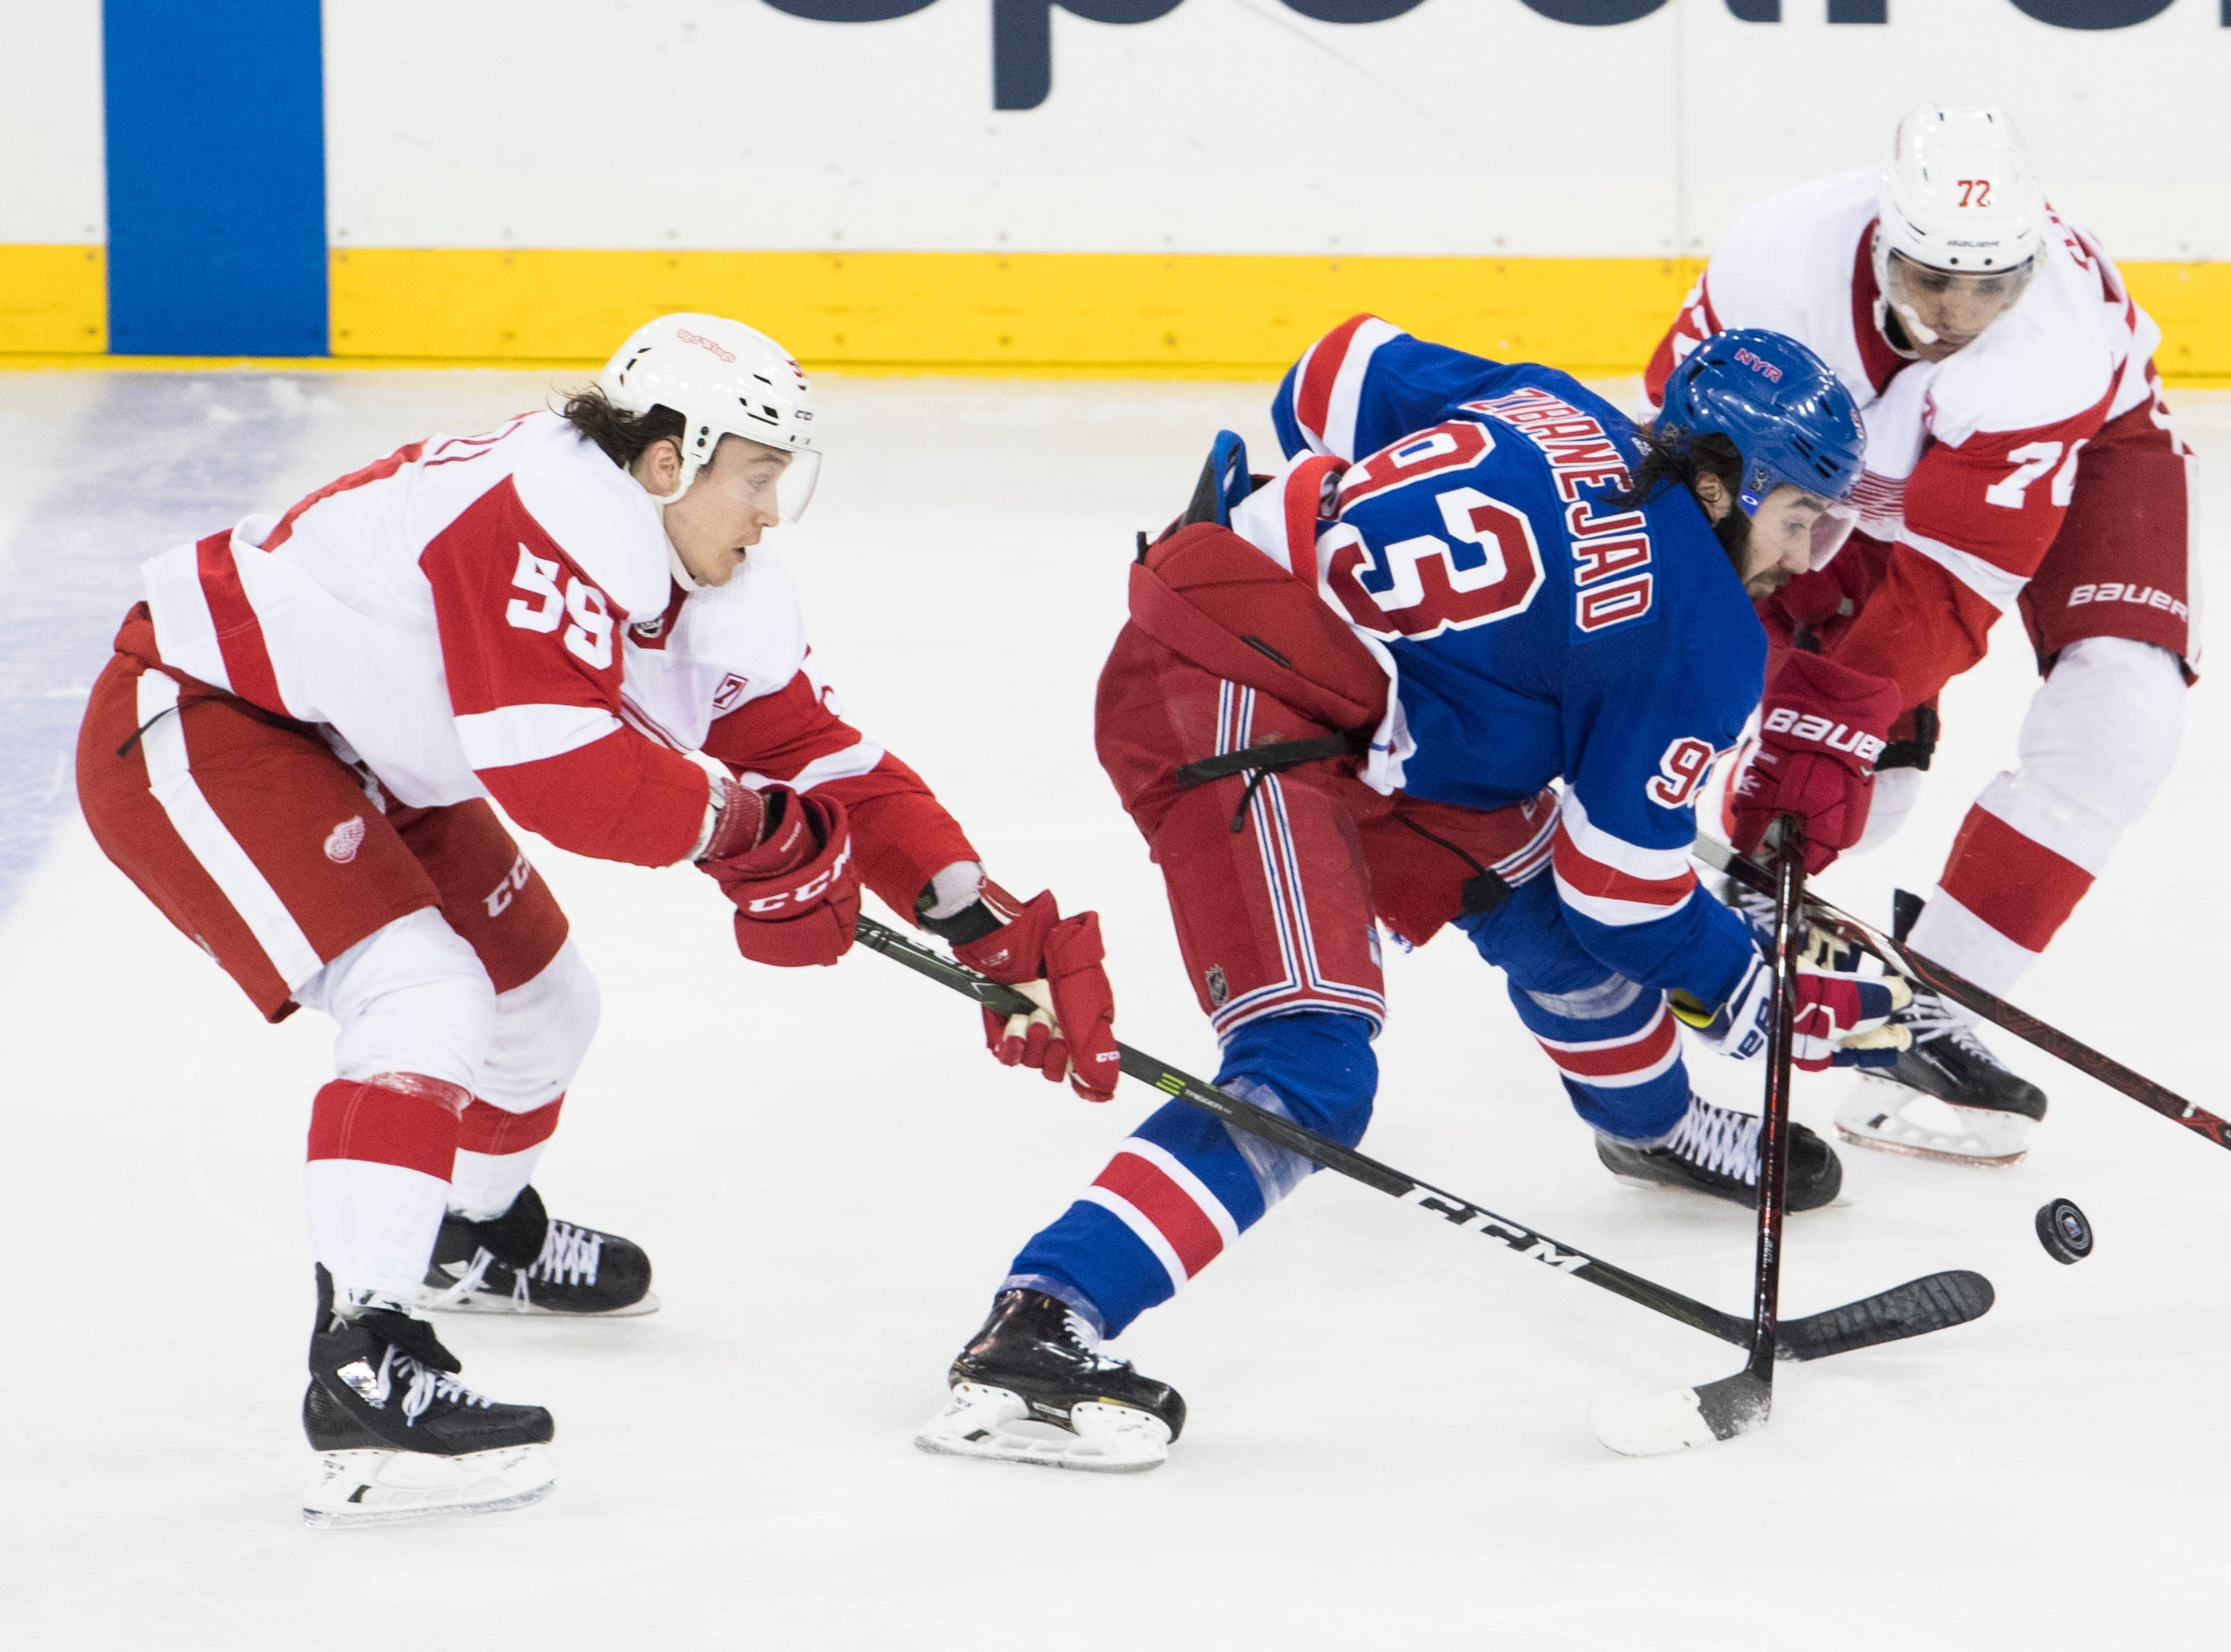 New York Rangers center Mika Zibanejad (93) skates against Detroit Red Wings left wing Tyler Bertuzzi (59) and center Andreas Athanasiou (72) during the third period.